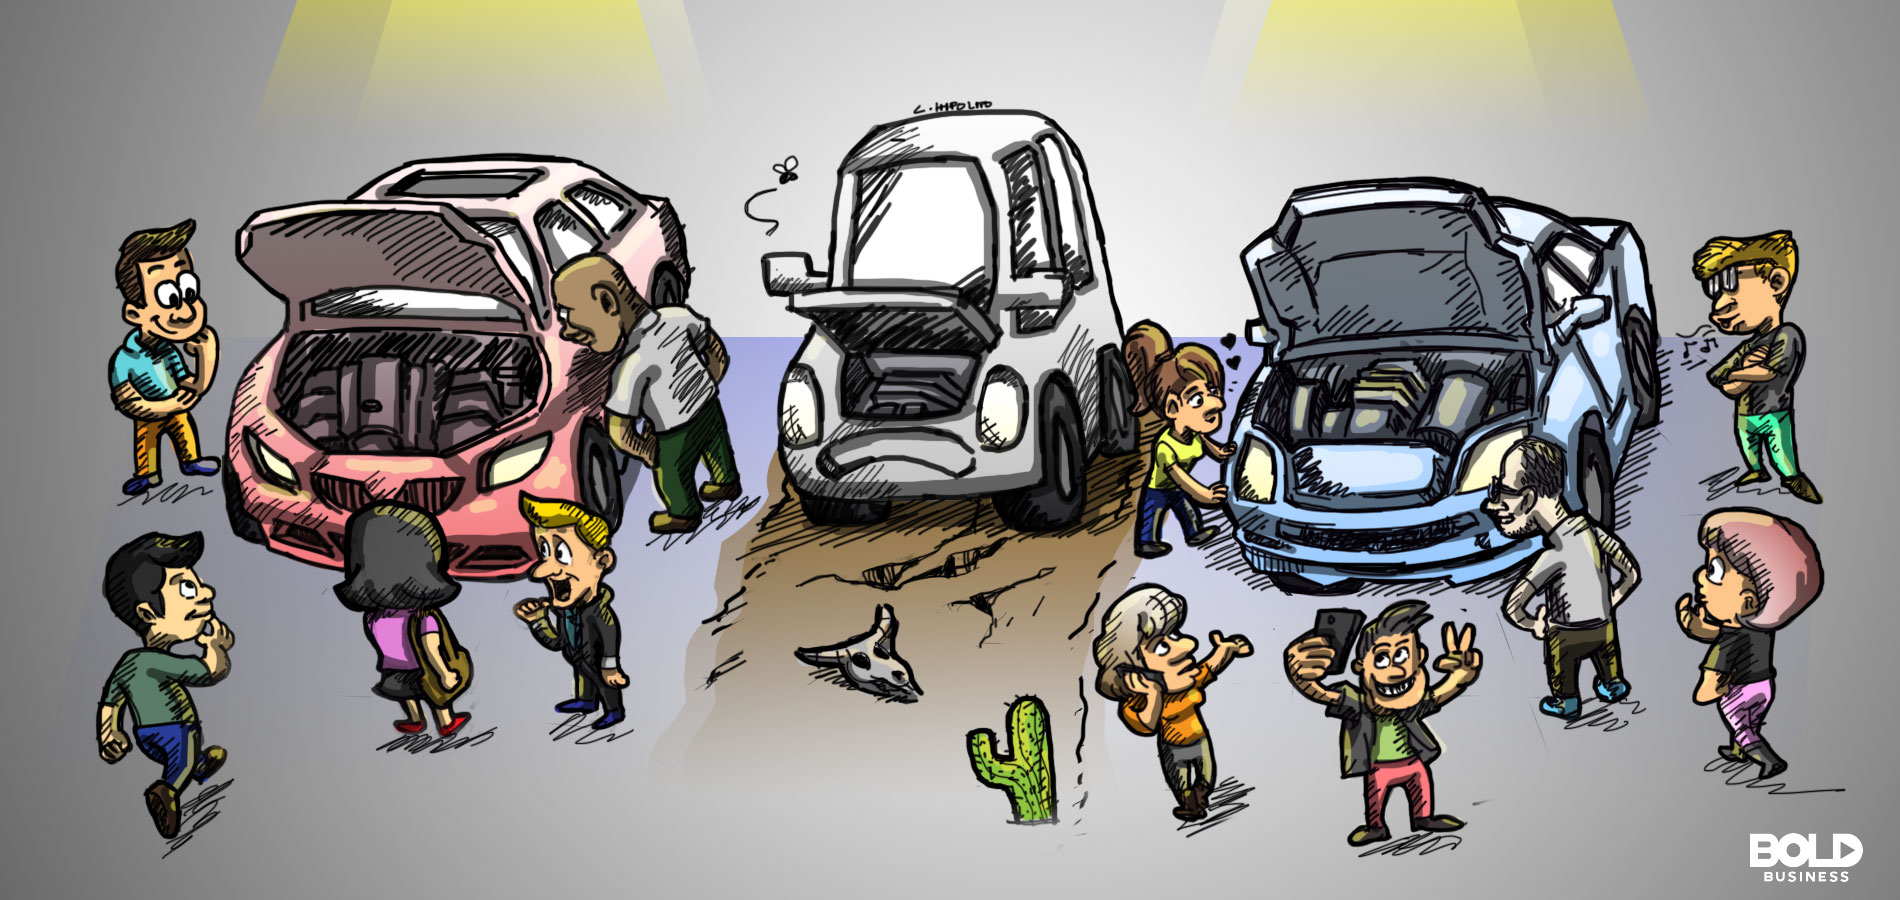 Illustration of three inoperable cars and the frustrated owners of internalcombustion engine vehicles